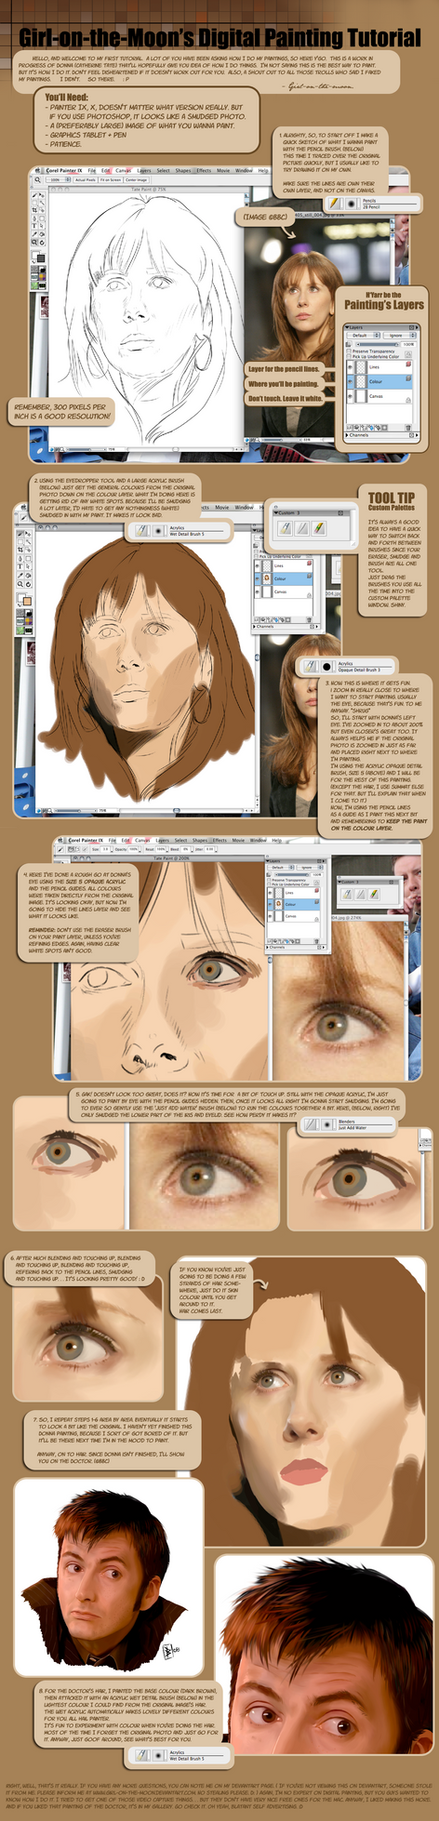 Painting Tutorial by Girl-on-the-Moon